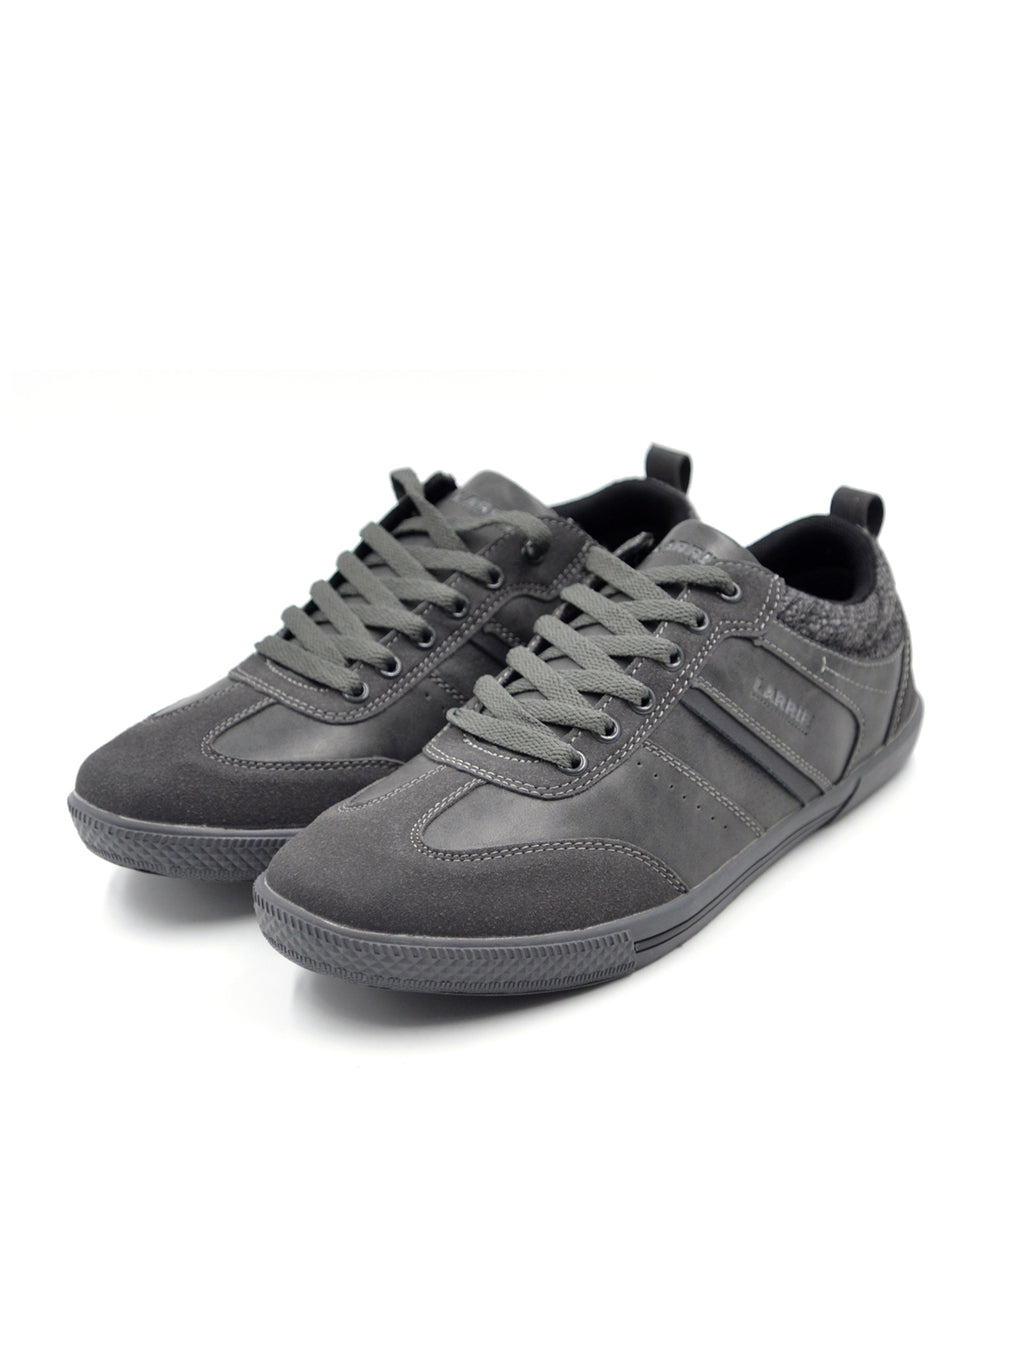 LARRIE Men Black Classic Plain Sneakers